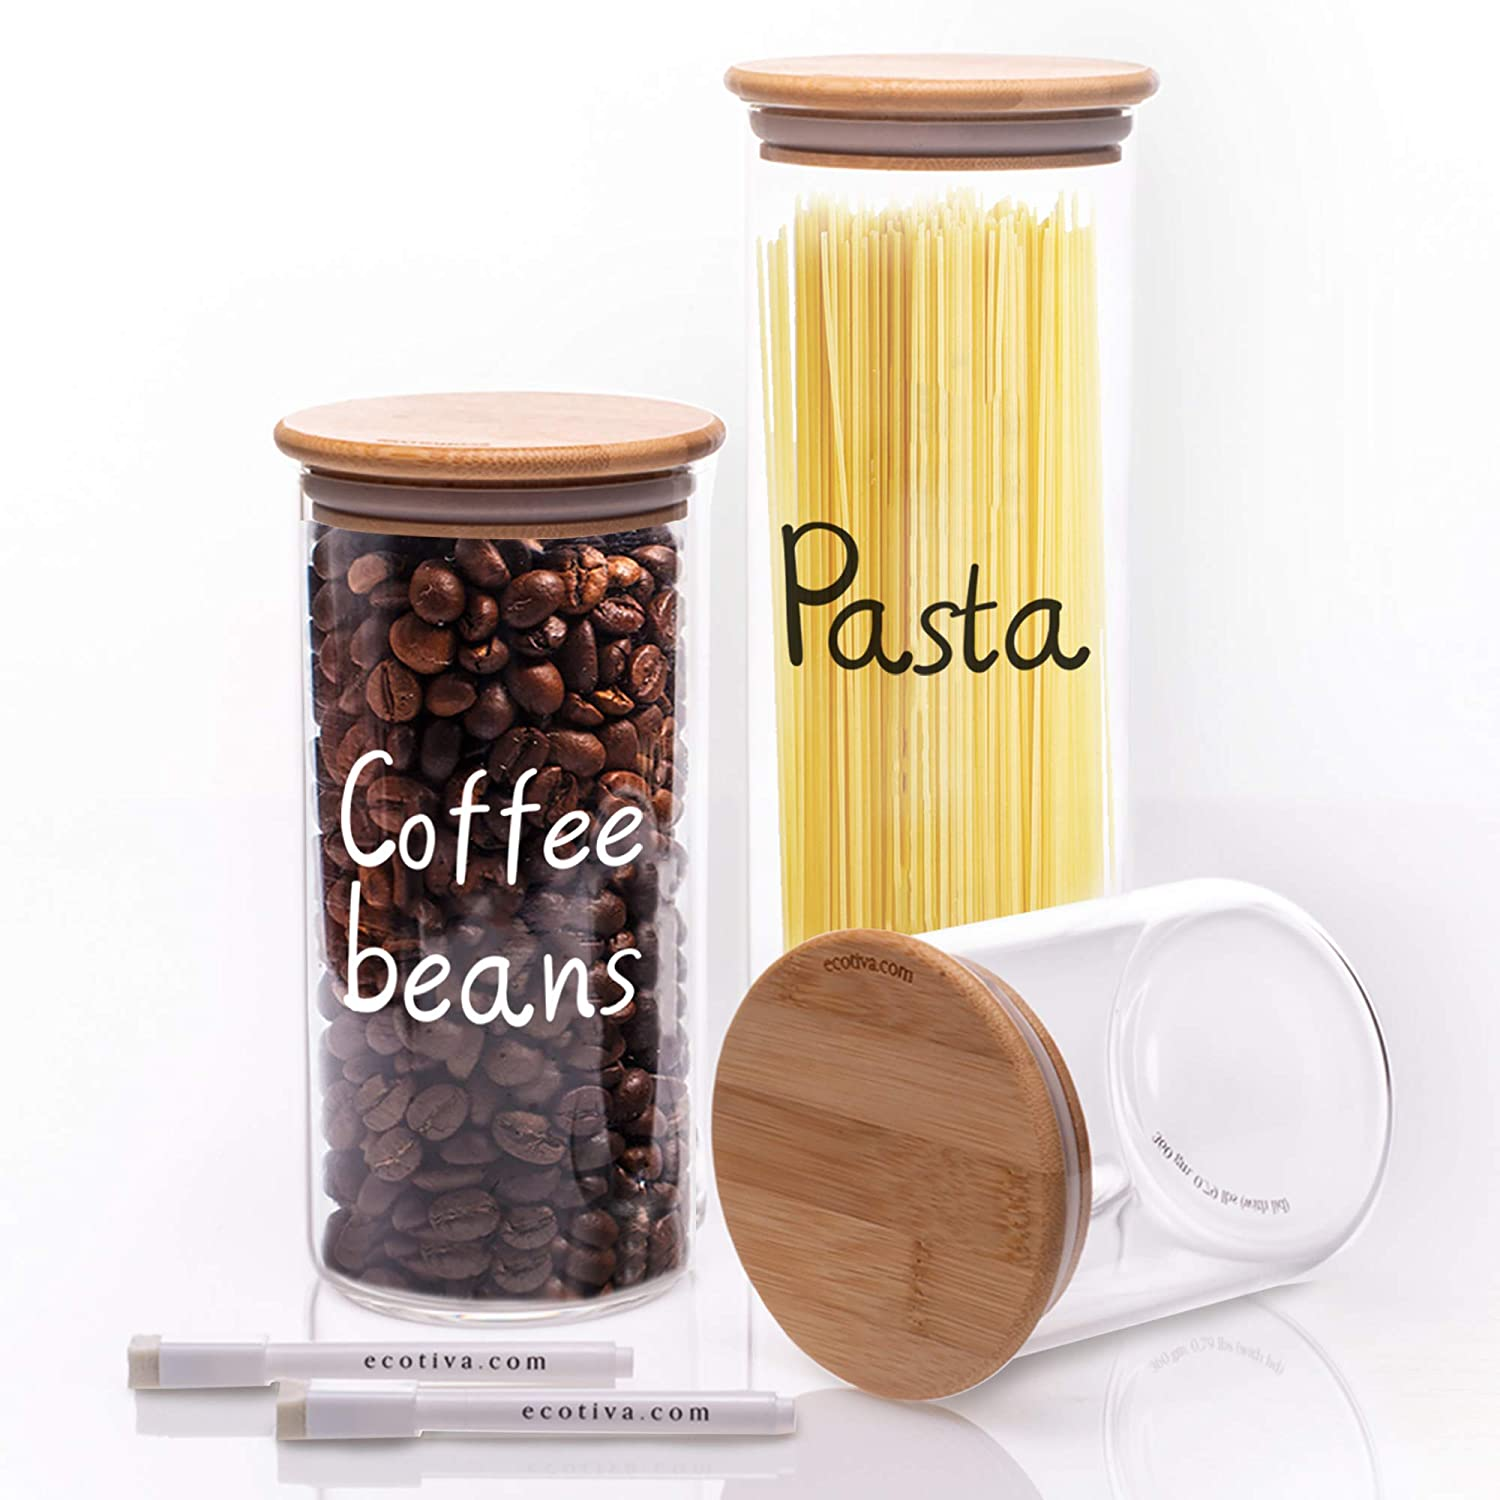 Glass Jars With Bamboo Lids - Glass Kitchen Canisters (3) - Bamboo Glass Storage Containers - Kitchen Jars With Markers For Labeling And Tare Weights On Bottom - Glass Canisters Sets For The Kitchen - Glass Jars With Wood Lids